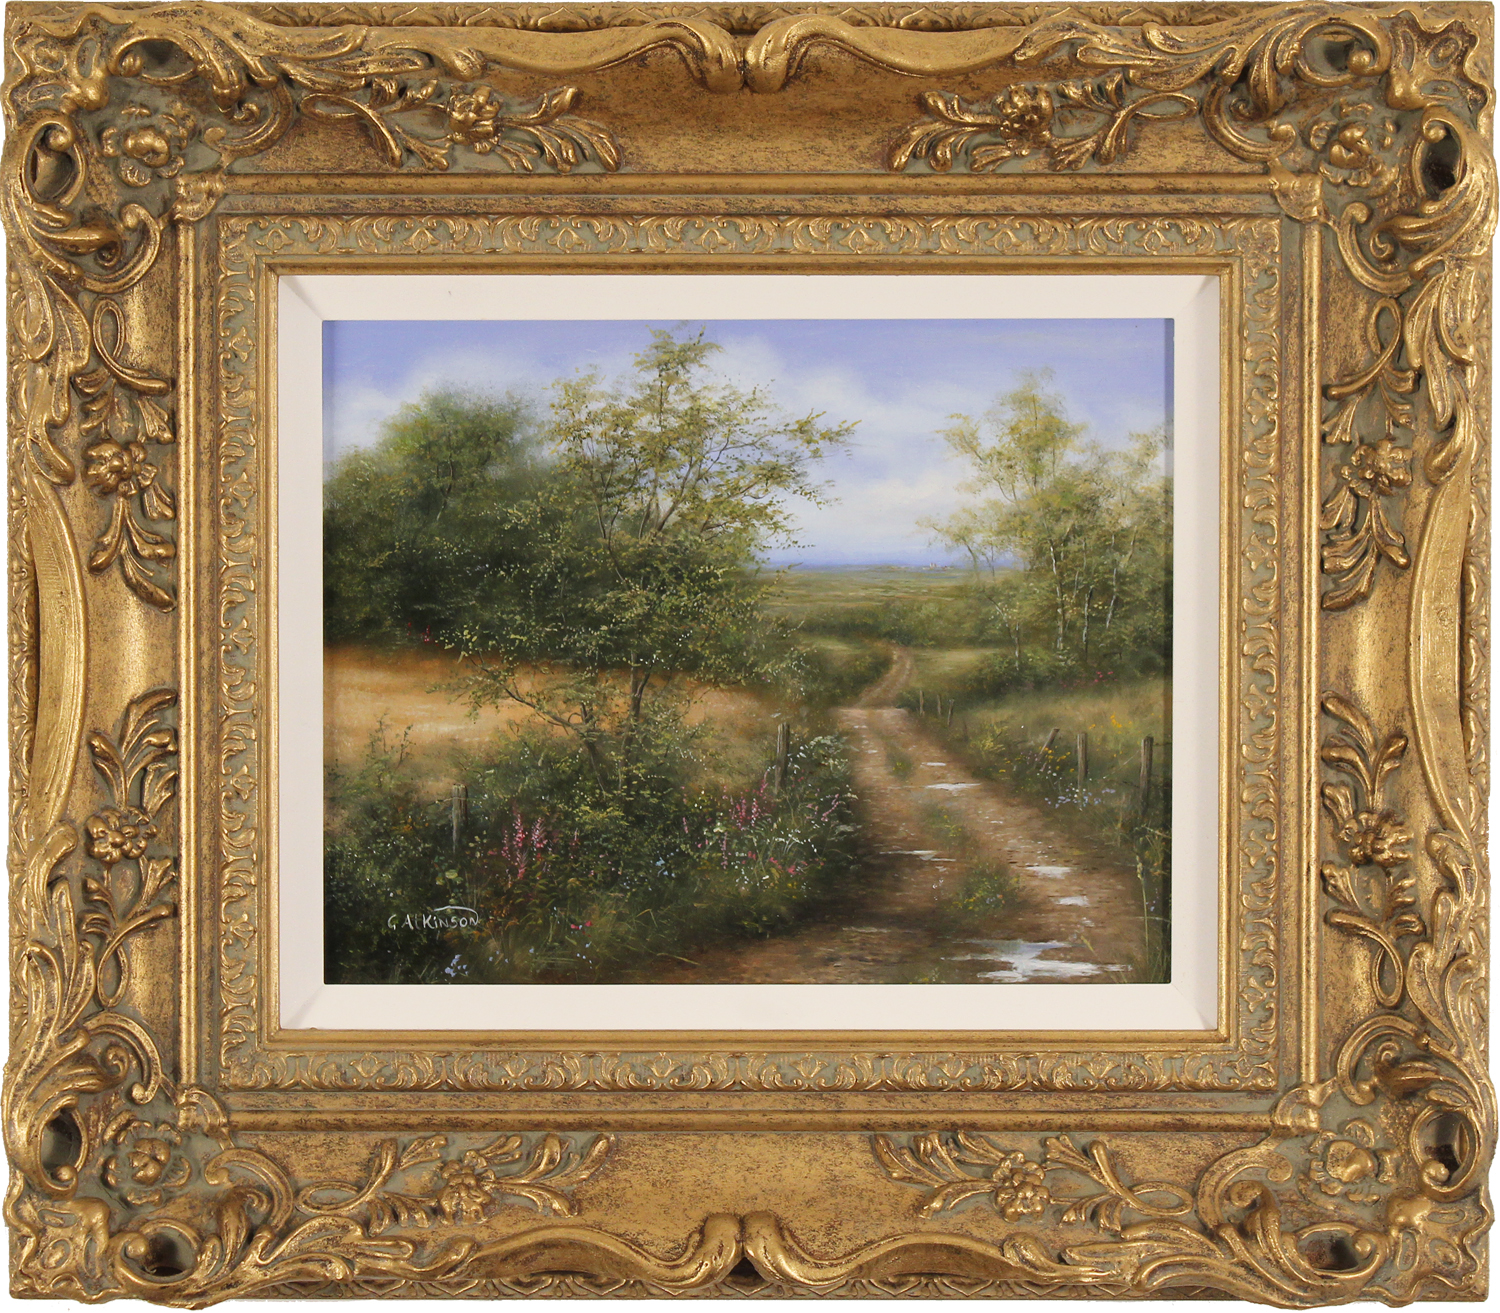 George Atkinson, Original oil painting on panel, Vale of York, click to enlarge